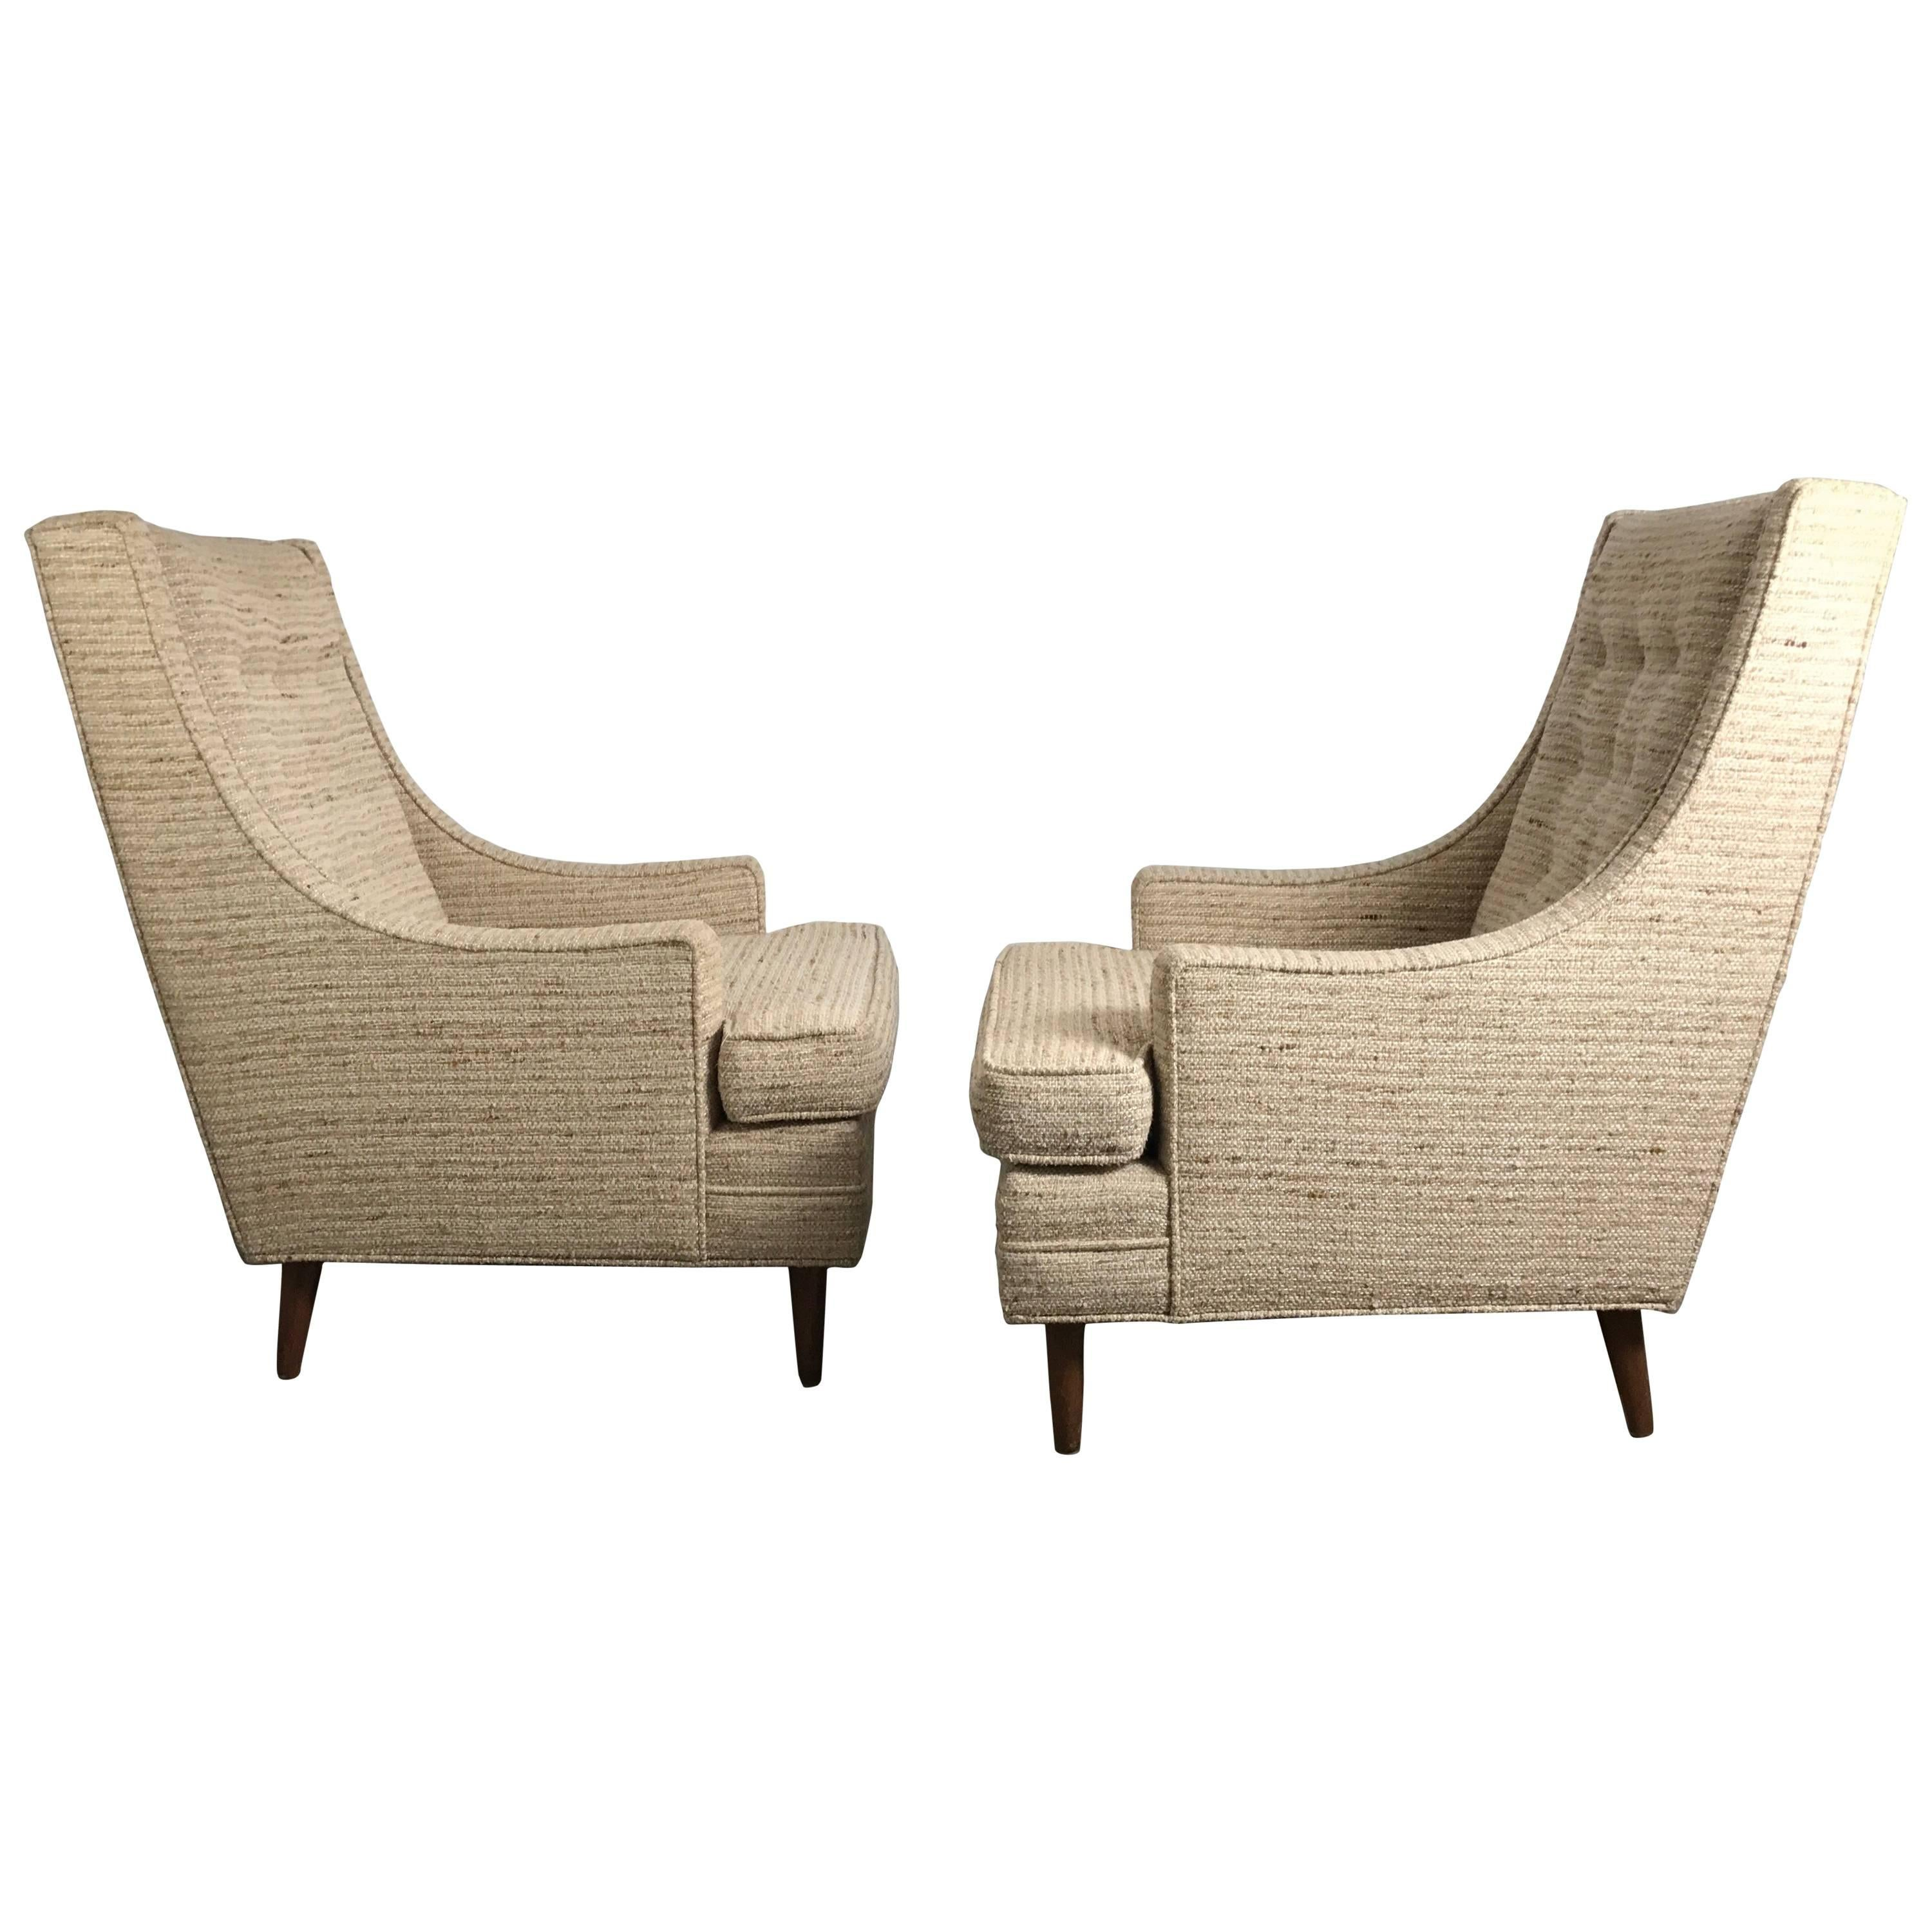 Classic Mid-Century Modern Highback Lounge Chairs after Harvey Probber